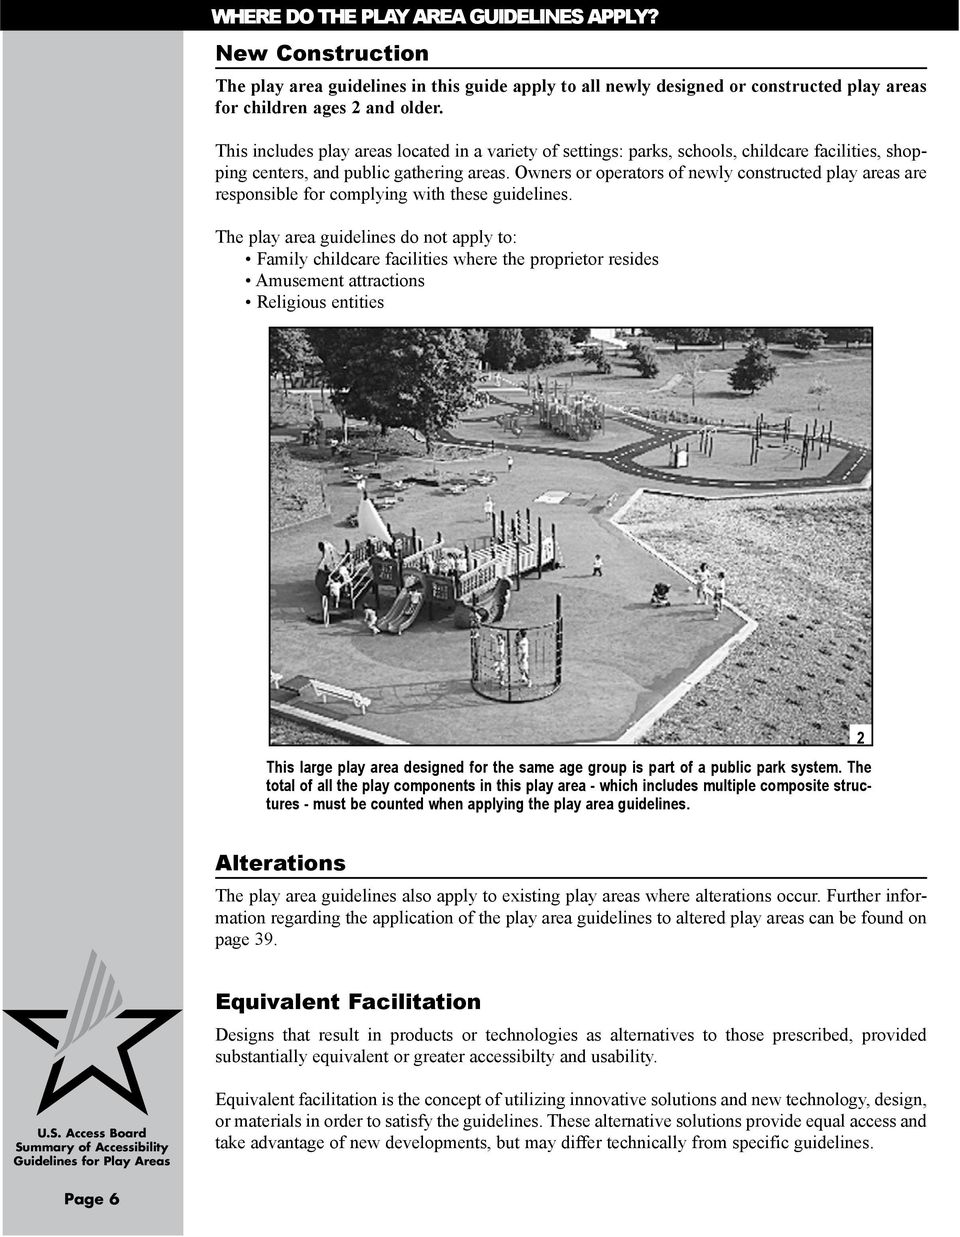 Owners or operators of newly constructed play areas are responsible for complying with these guidelines.